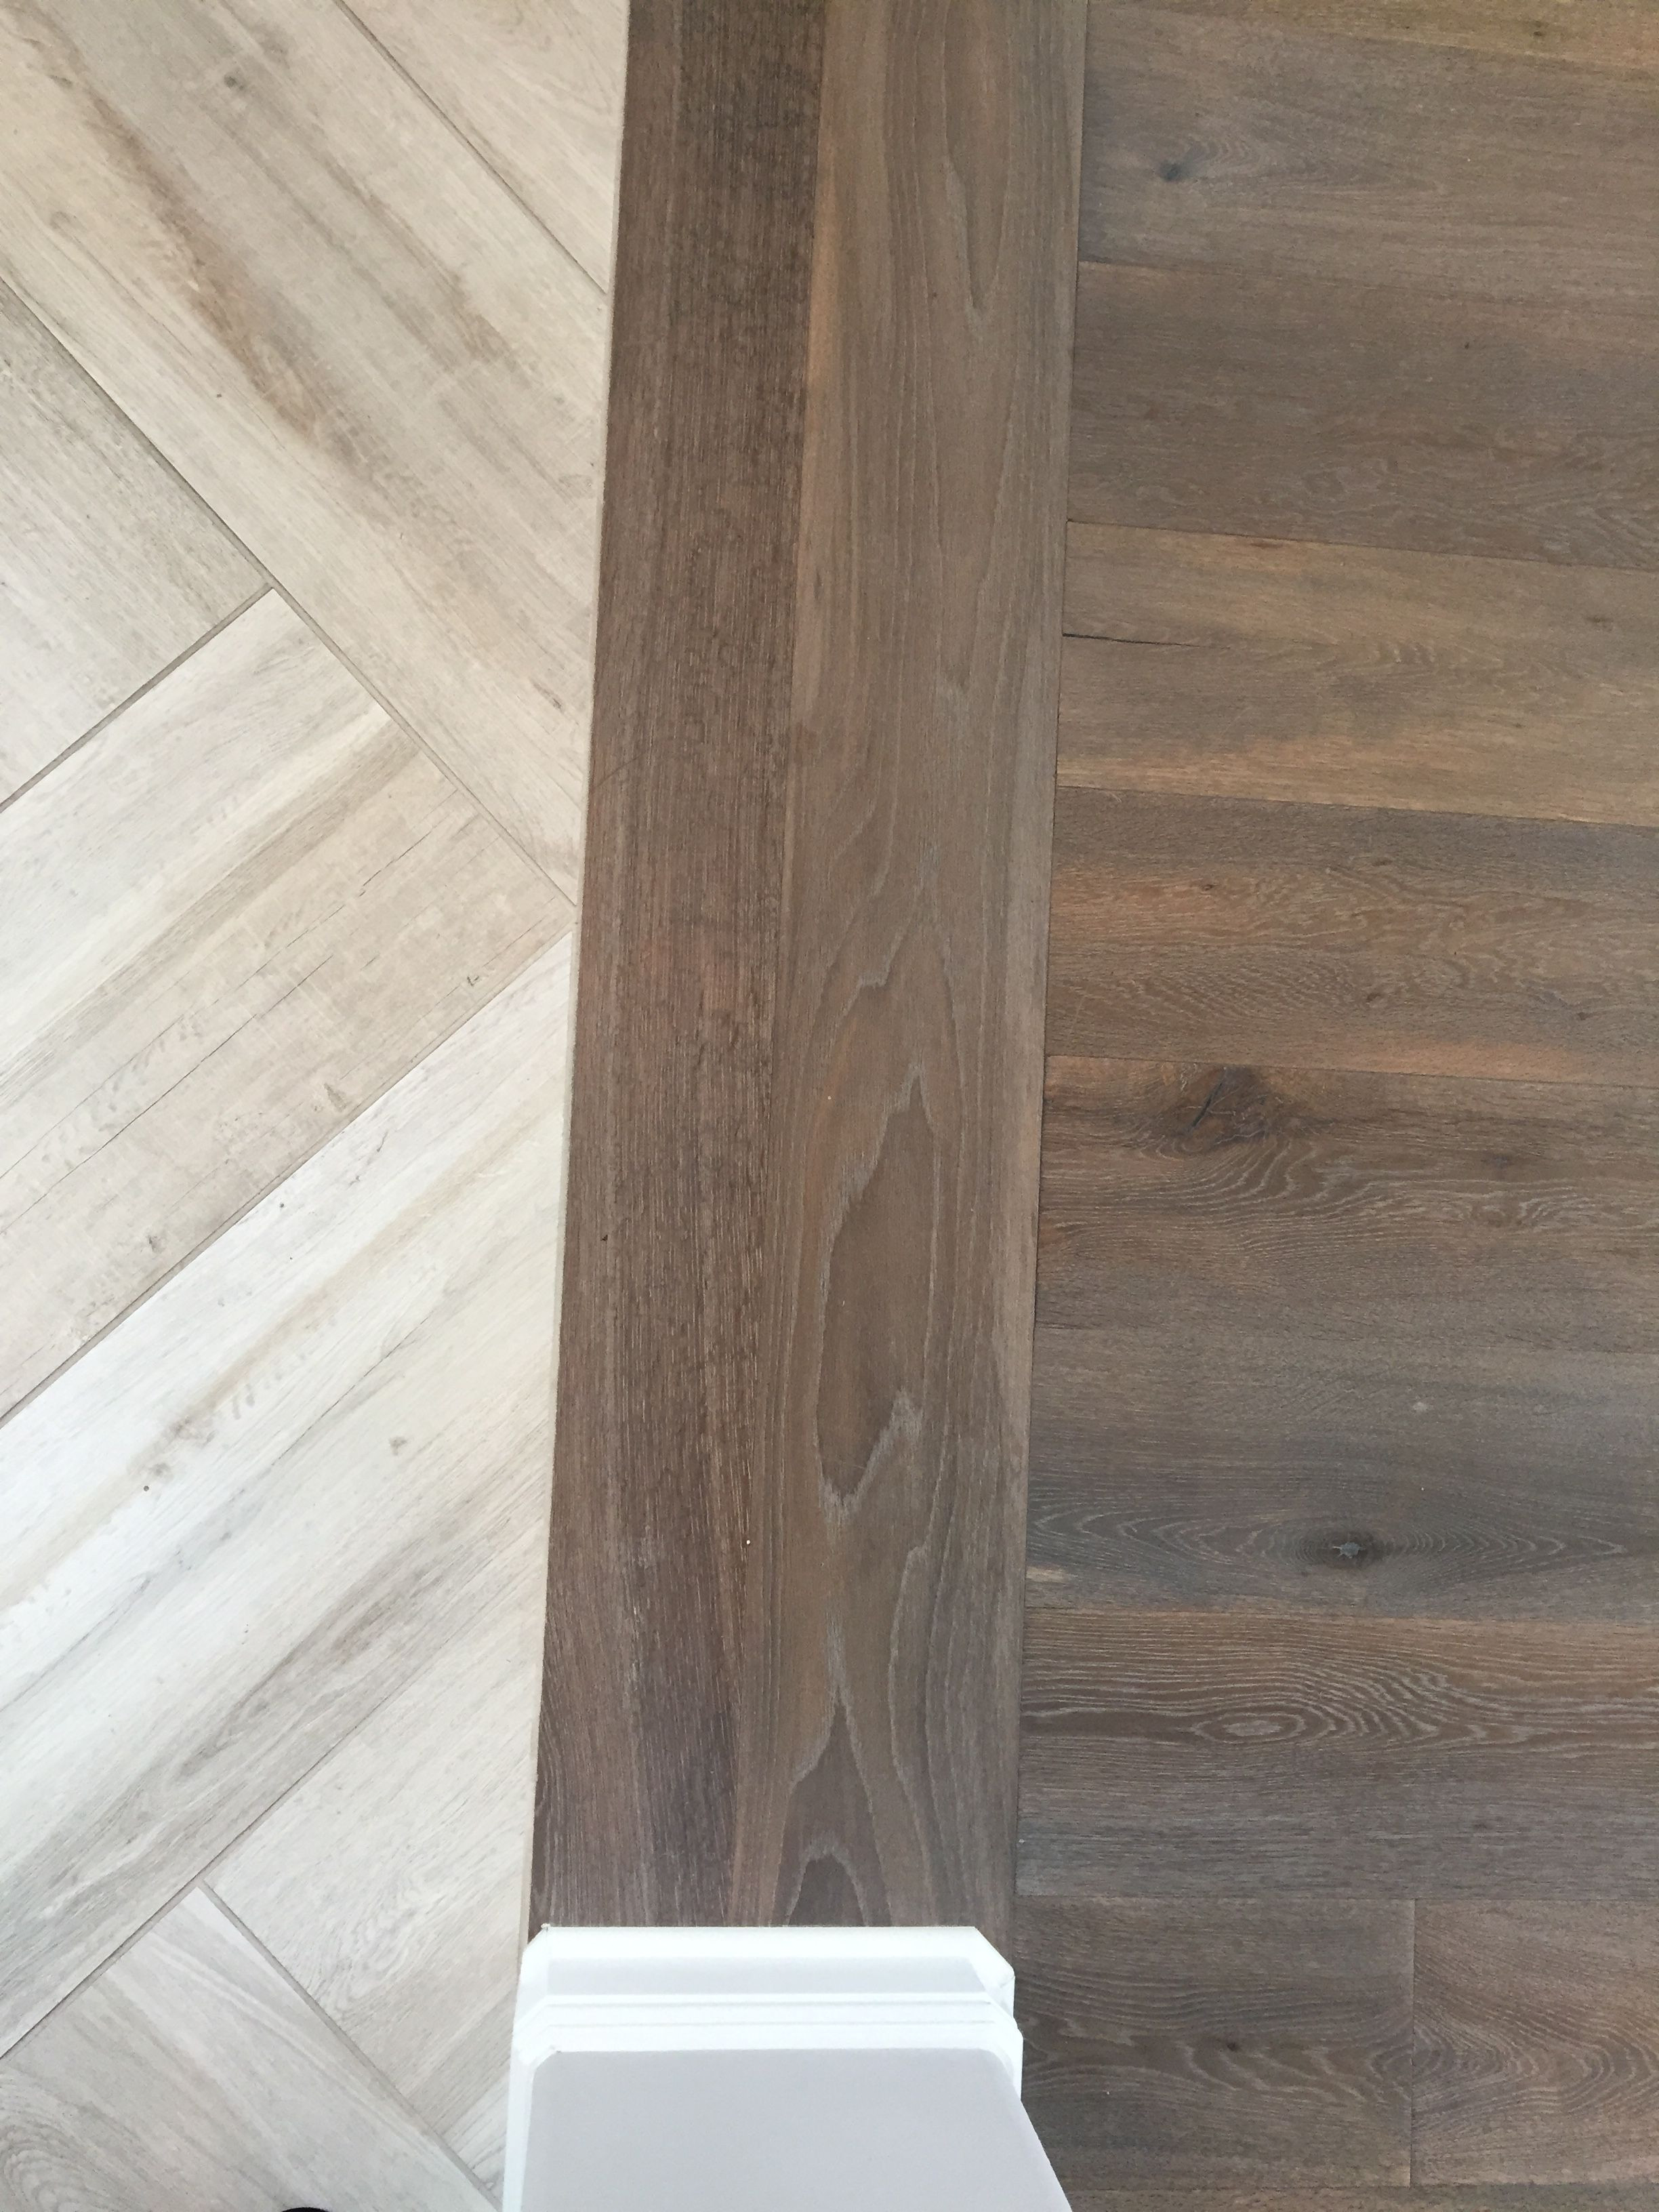 hardwood floor installation contractors of floor transition laminate to herringbone tile pattern model in floor transition laminate to herringbone tile pattern herringbone tile pattern herringbone wood floor